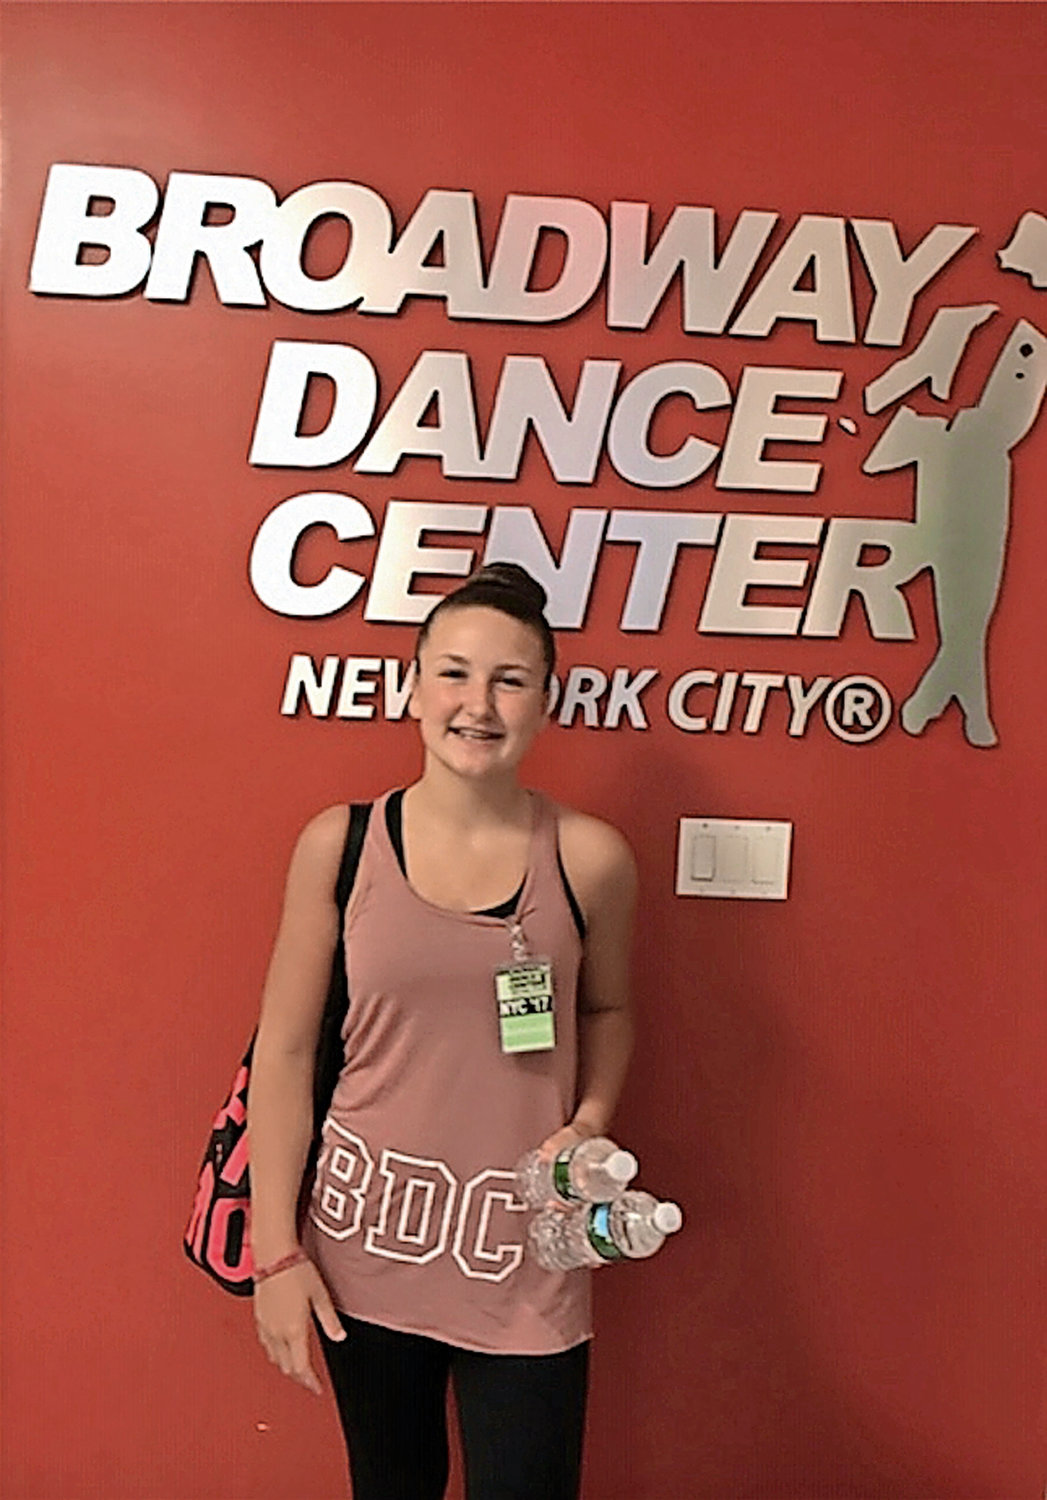 Jamison Novello, who died on March 22, attended dance training at Broadway Dance Center in Manhattan.